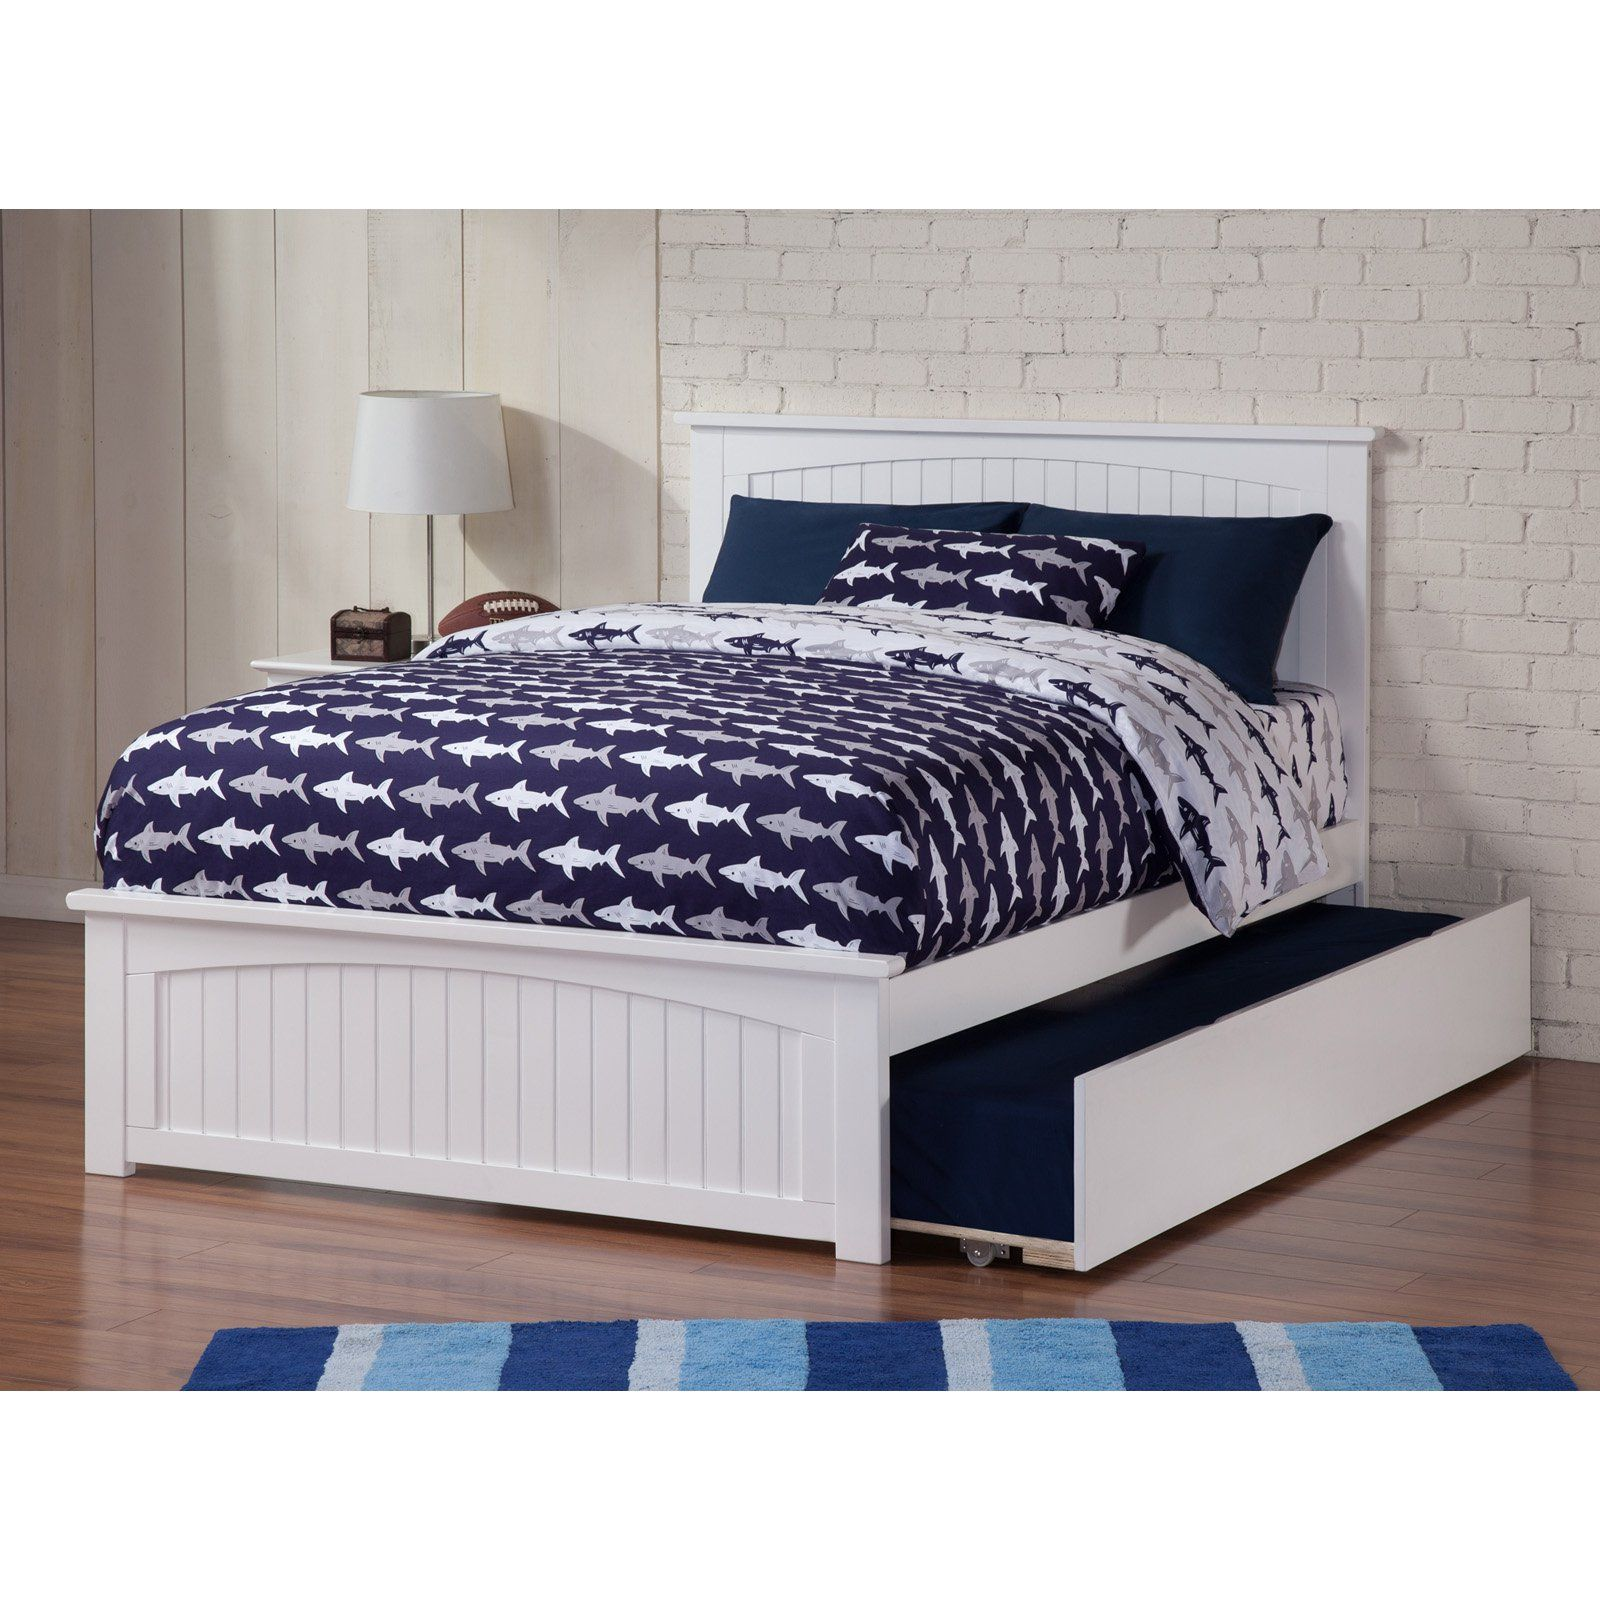 Atlantic Furniture Nantucket Bed with Matching Footboard